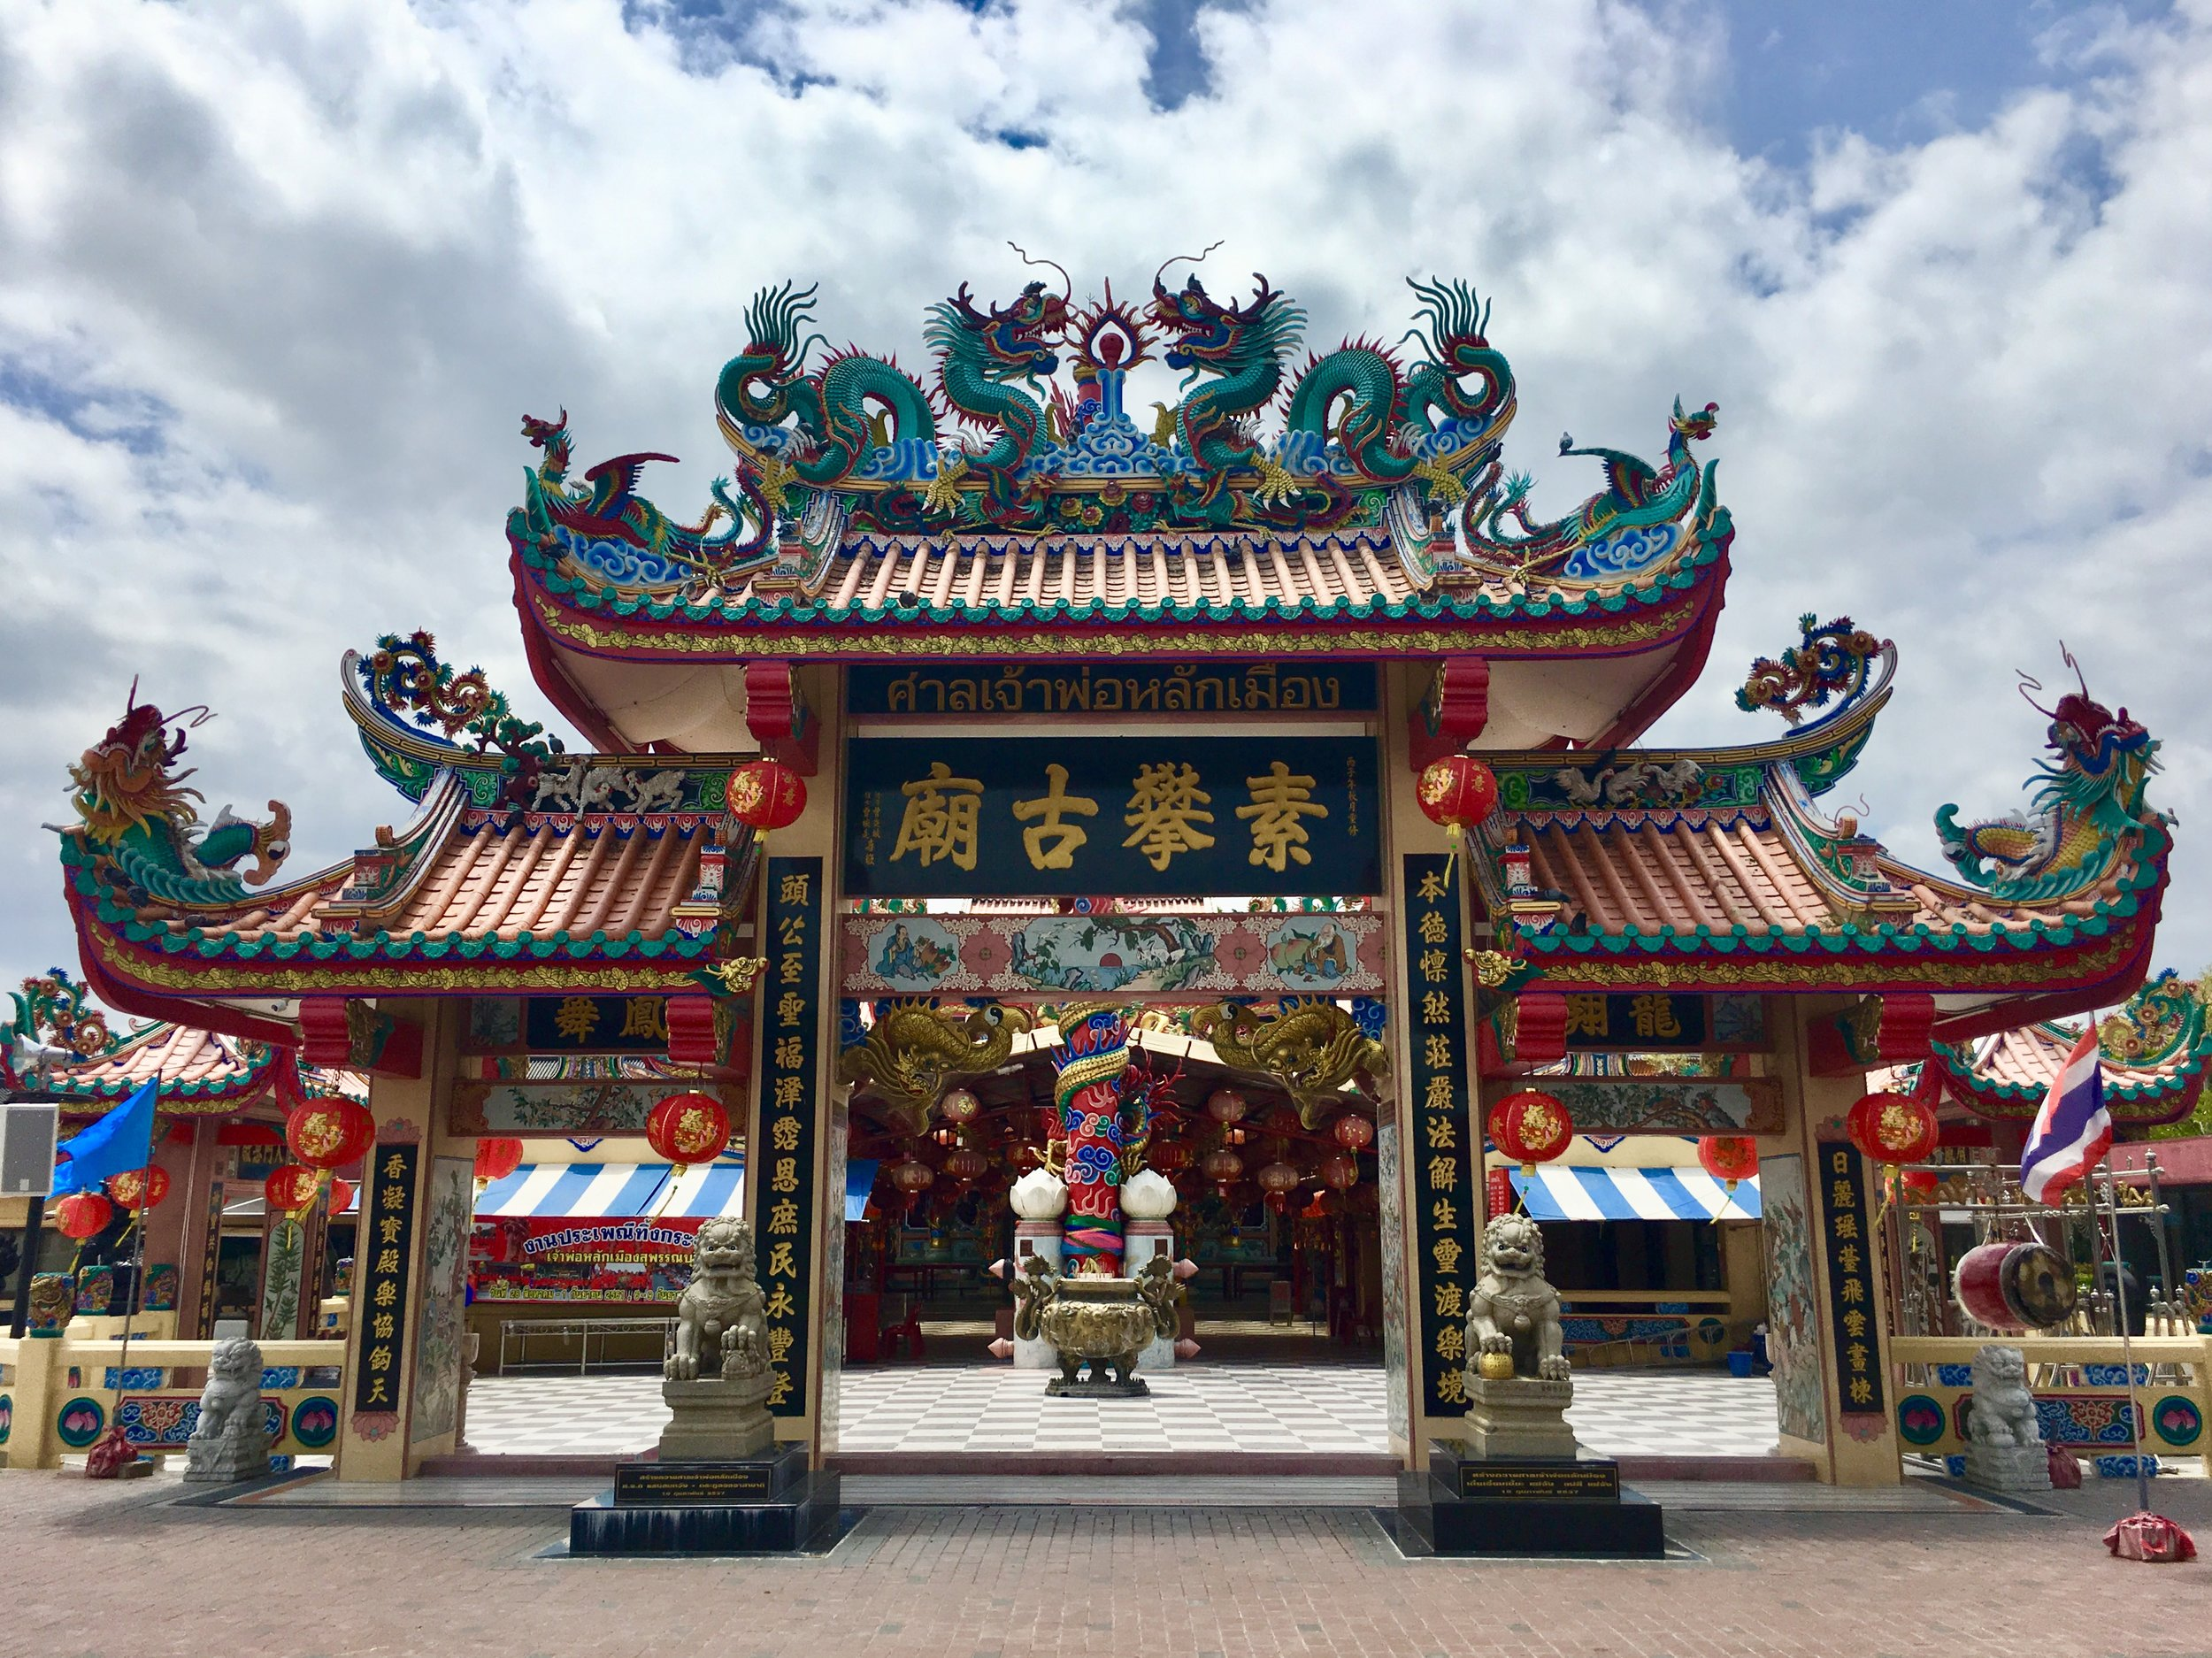 Impressive Chinese style gate at the Celestial Dragon Village / City Pillar Shrine in Suphan Buri